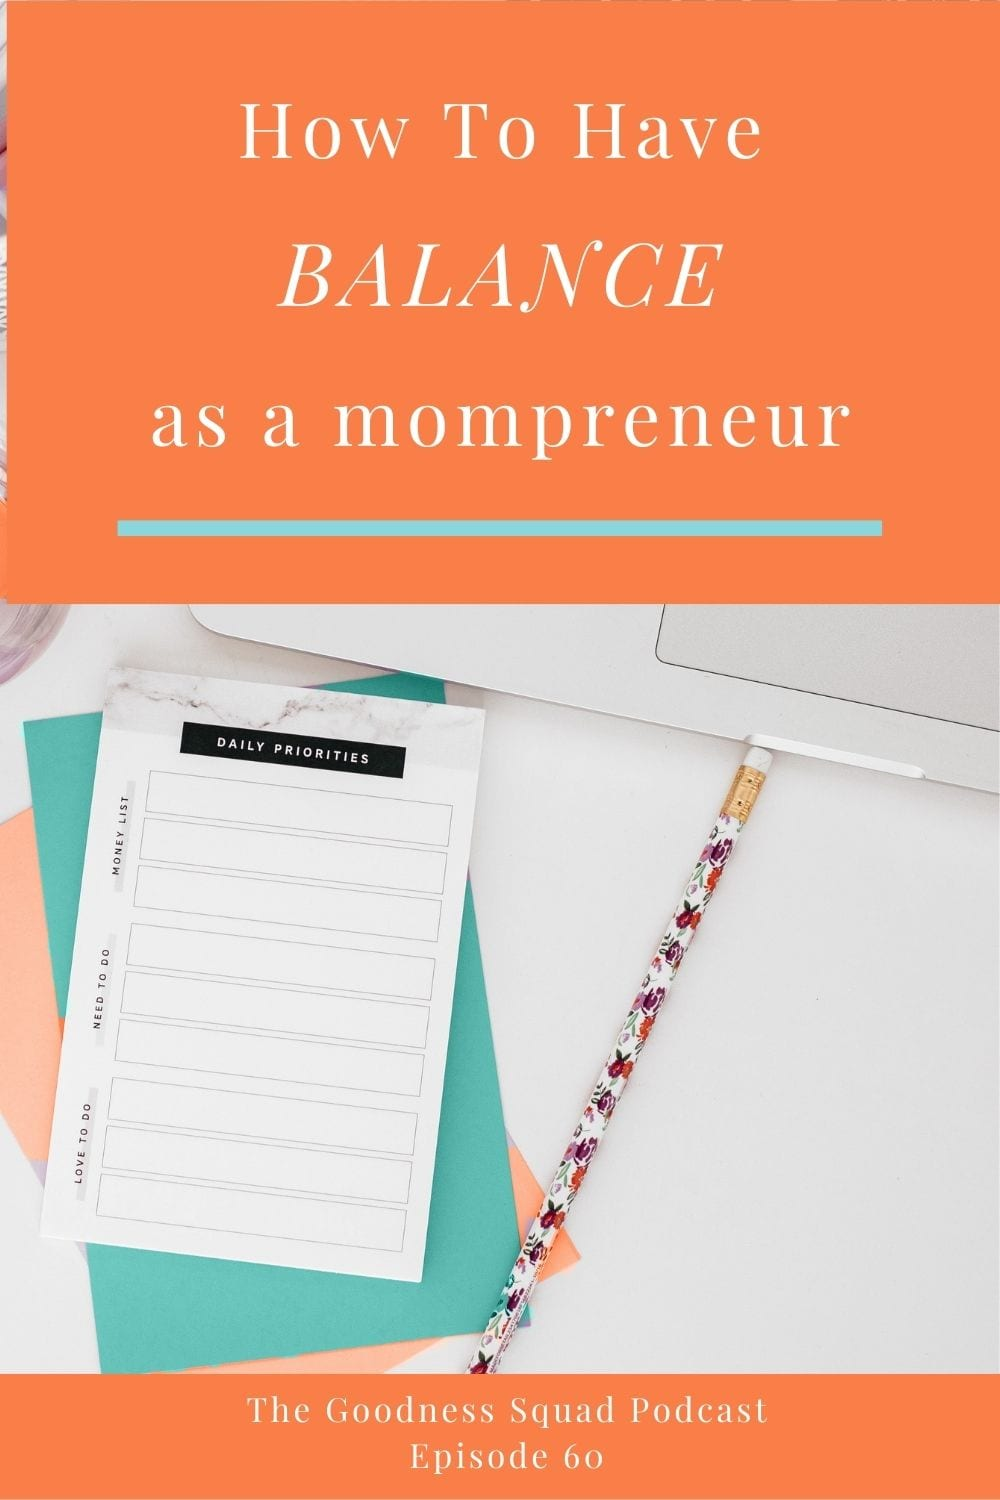 060_The 1 simple thing that helps me maintain balance as a mompreneur